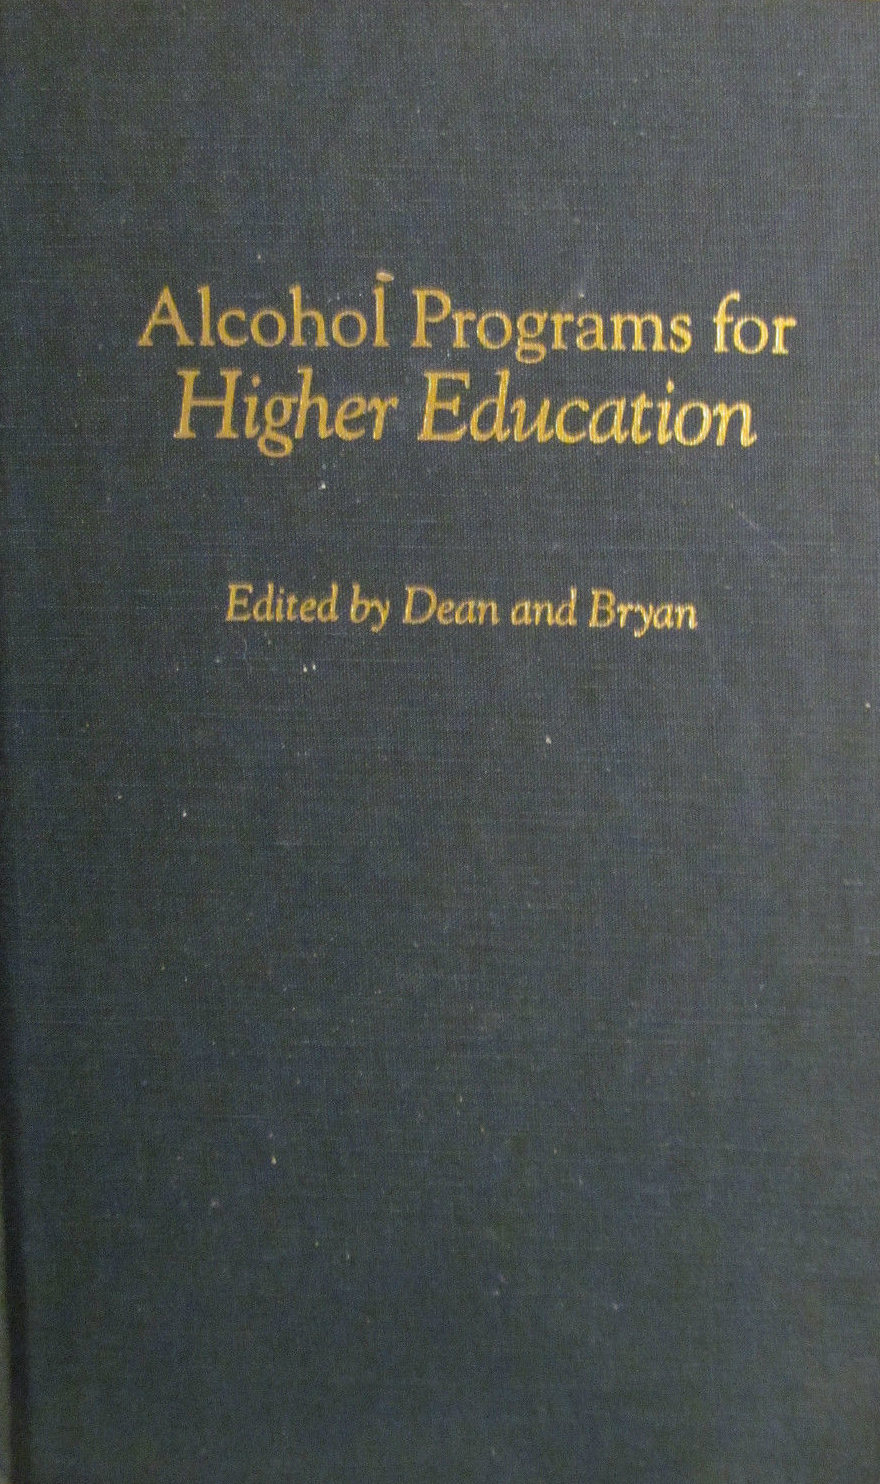 Alcohol Programs for Higher Education